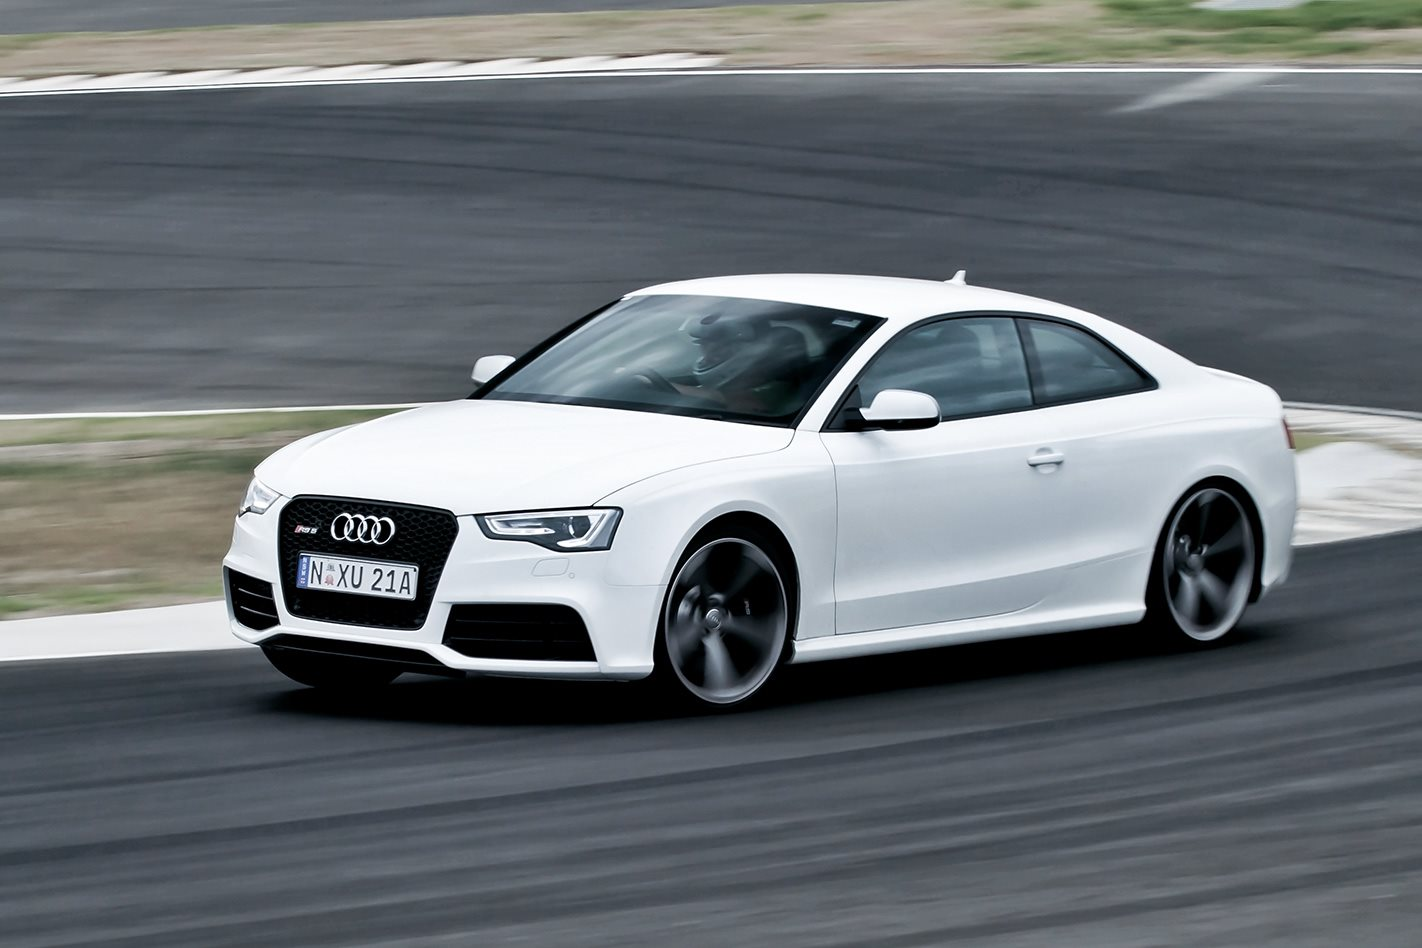 2012-Audi-RS5-front.jpg